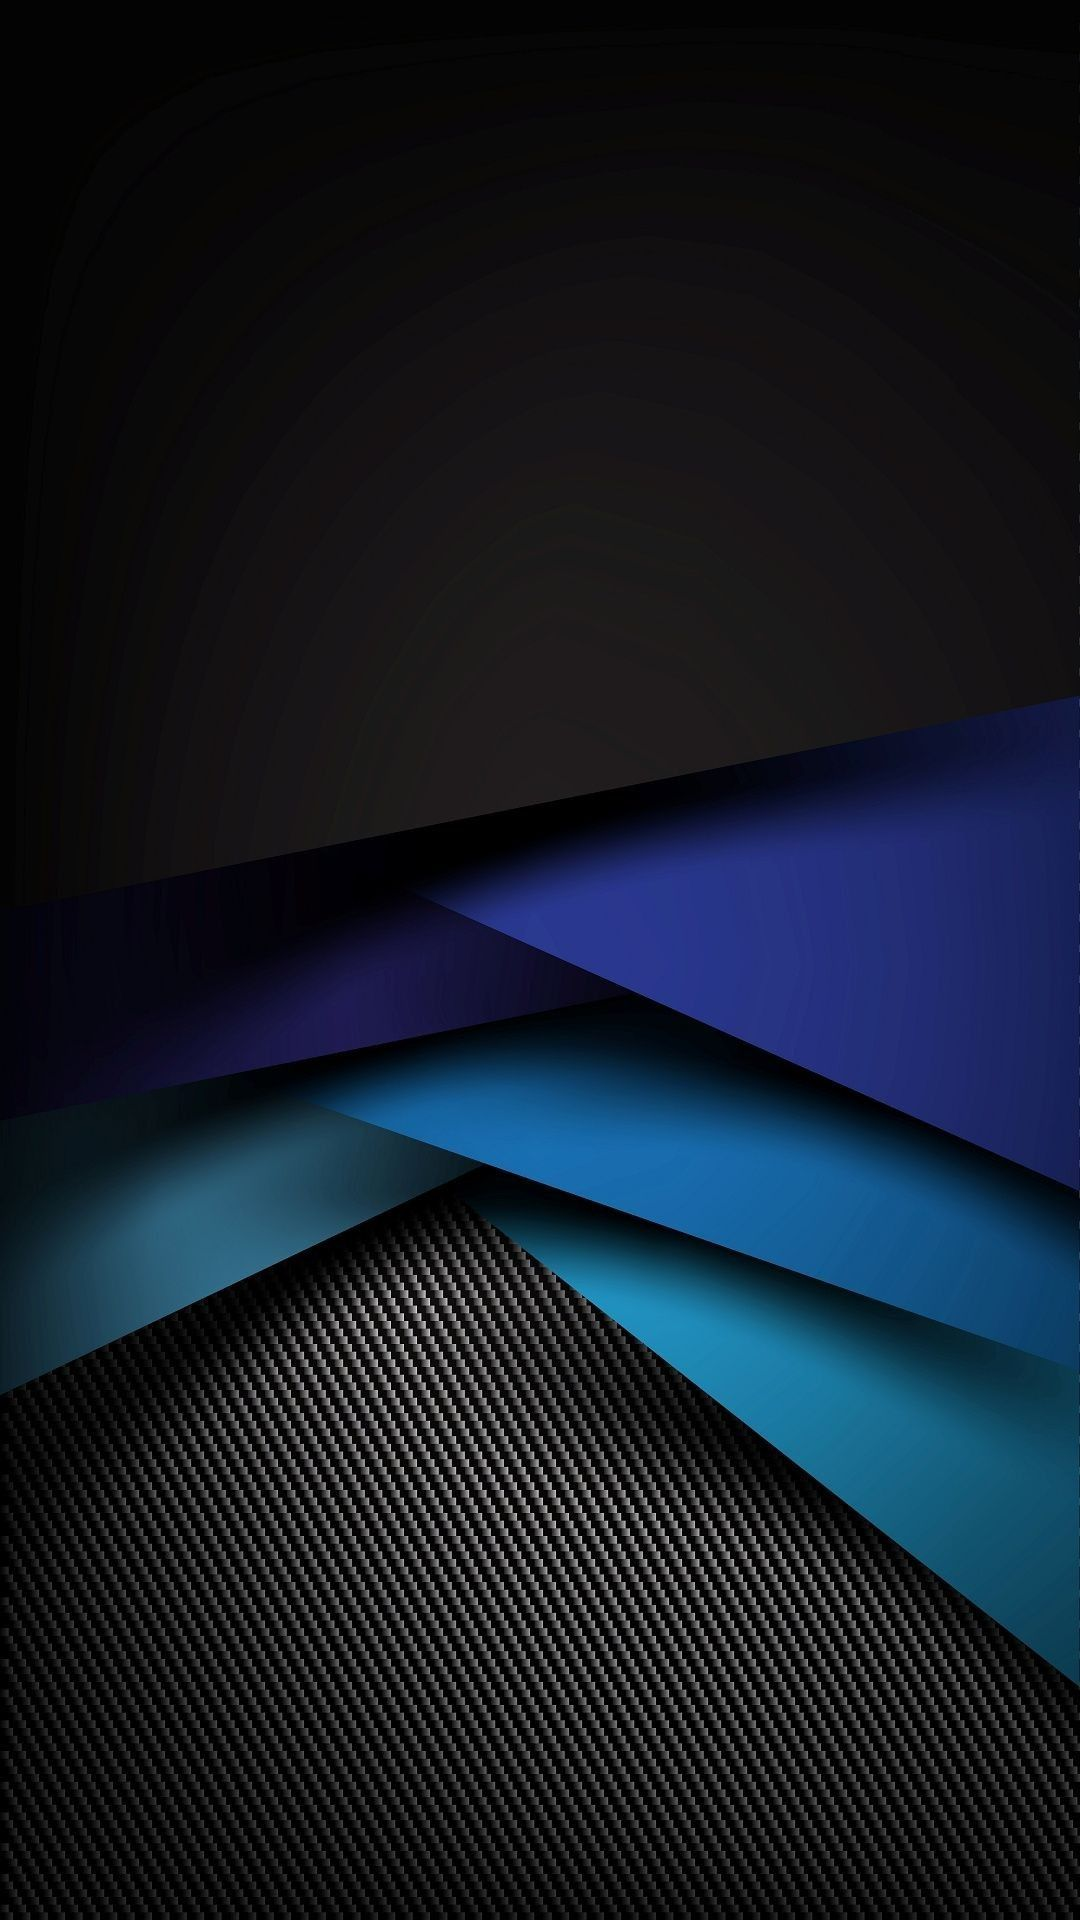 Iphone Wallpaper Geometric shapes dark background black